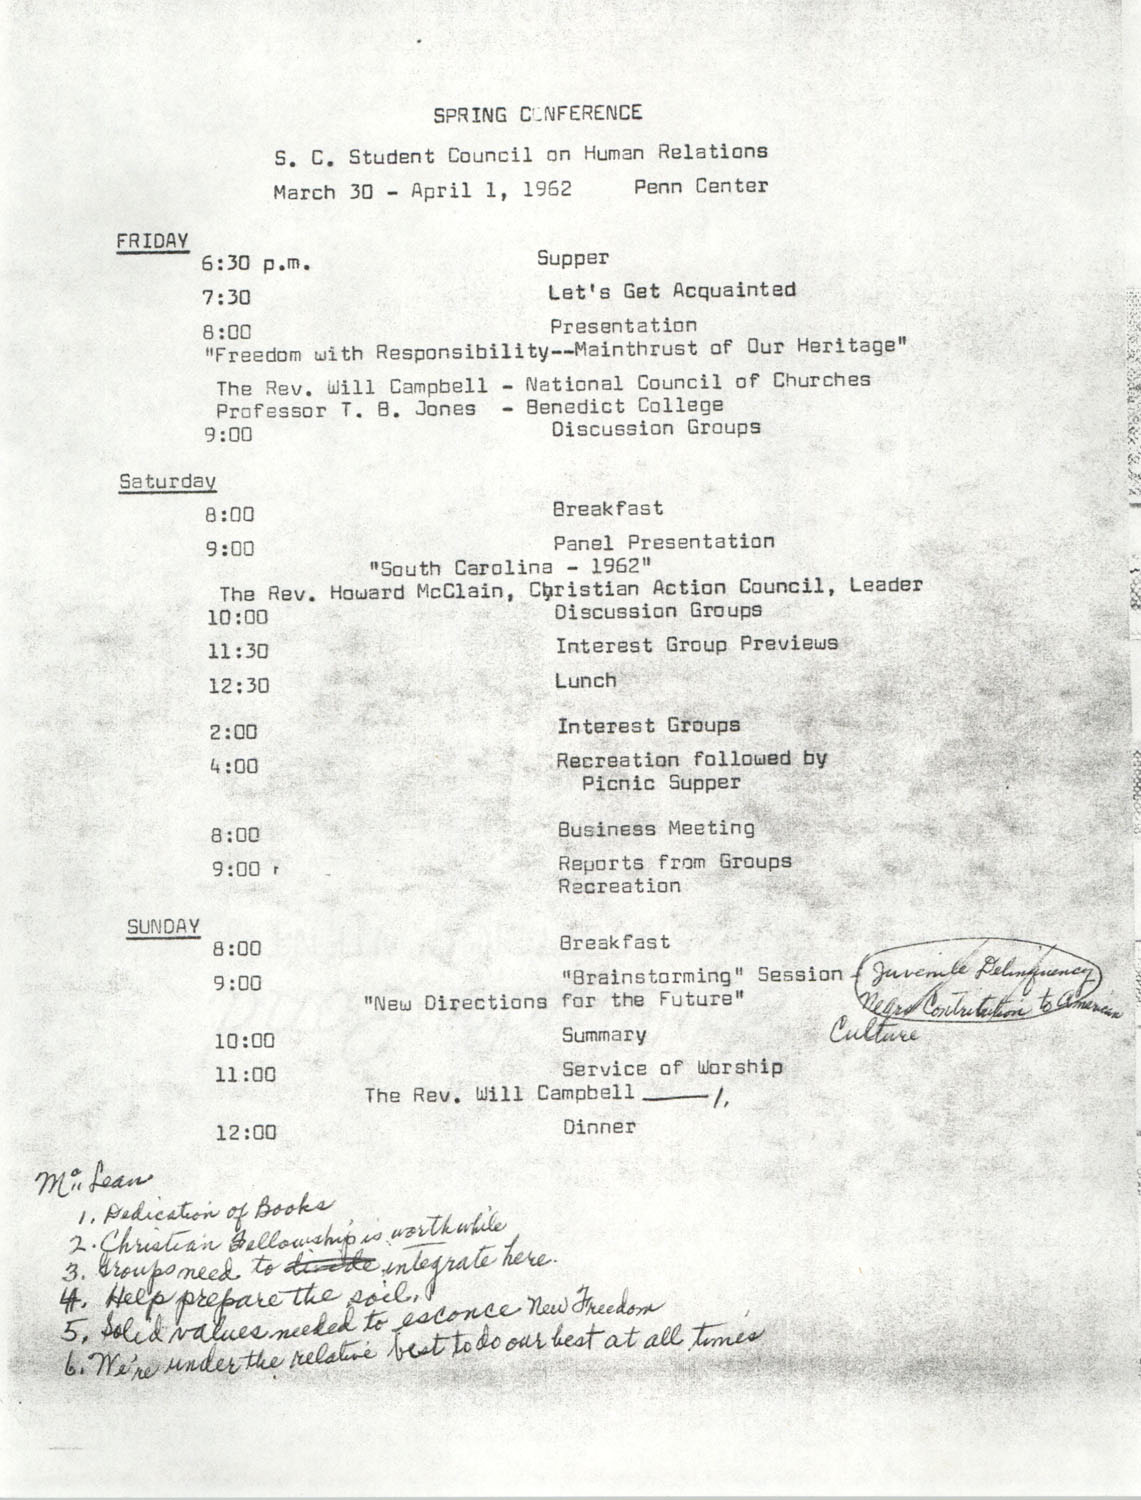 S. C. Student Council On Human Relations, Penn Community Services, Spring Conference, March 30 to April 1, 1962